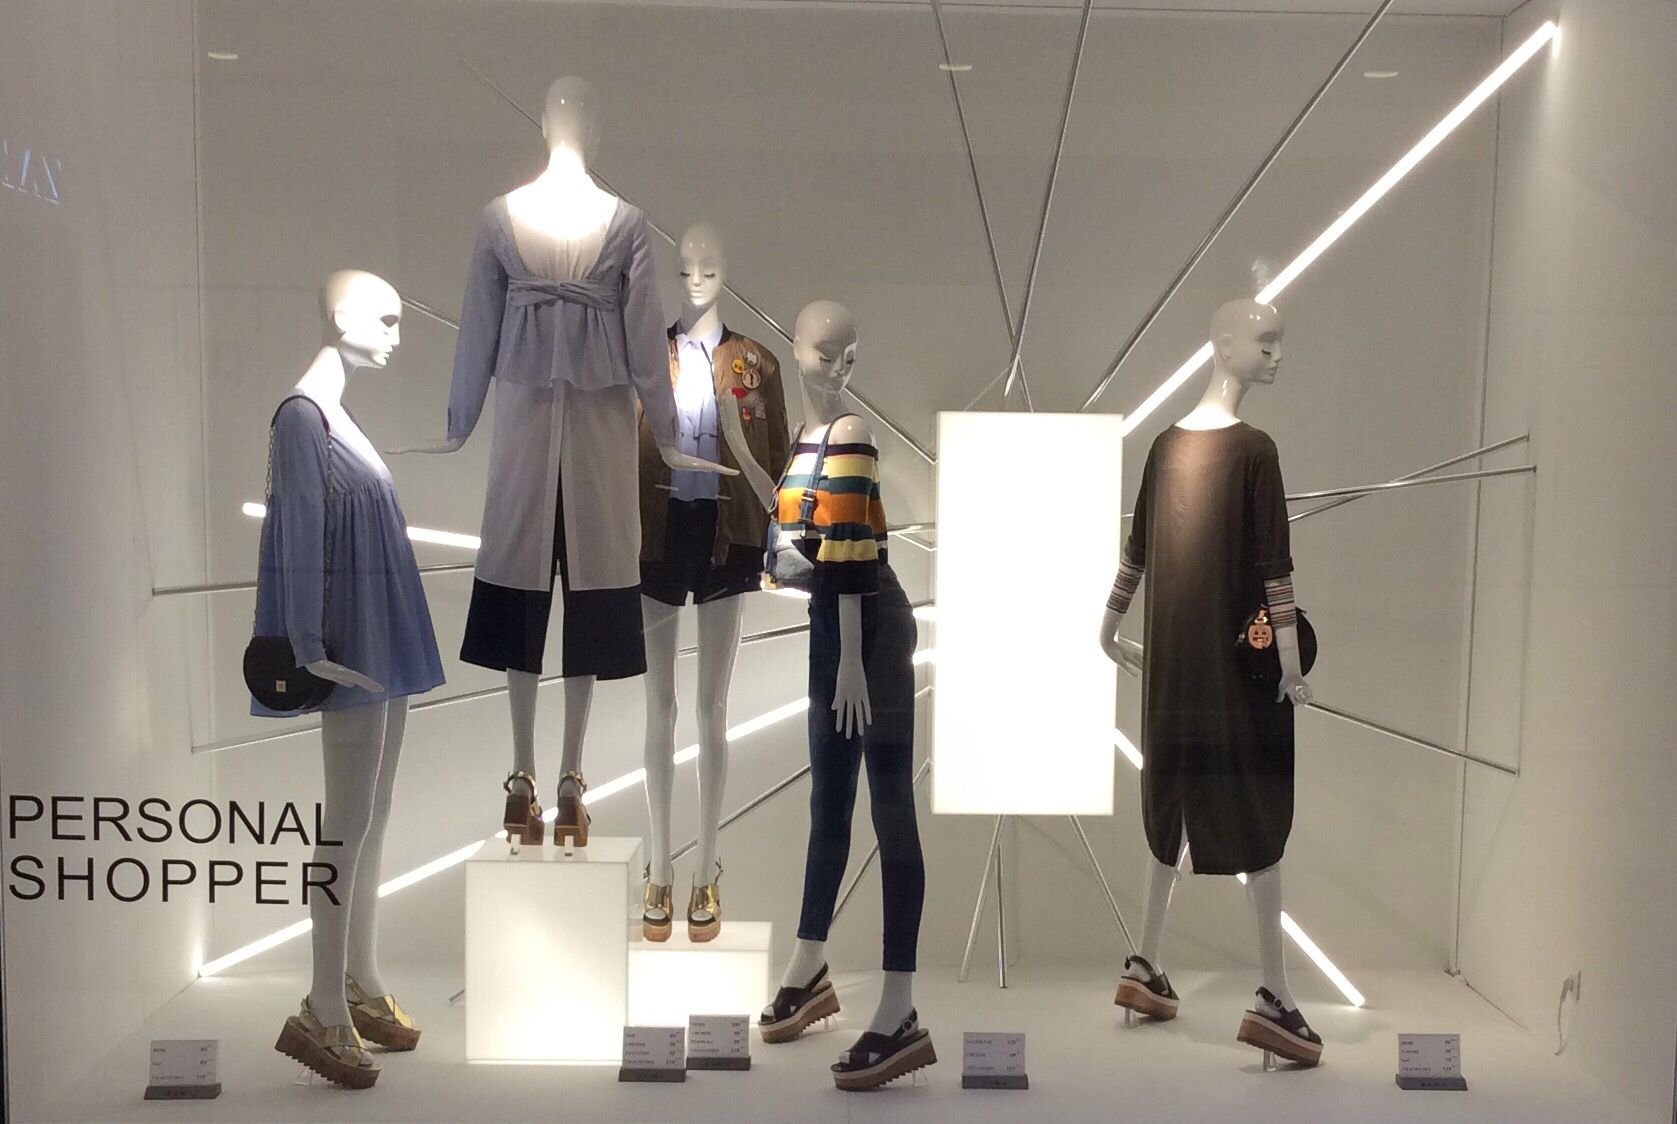 Pin By Rachid Kaddaoui On New Window Zara Retail Inspiration Visual Merchandising Visual